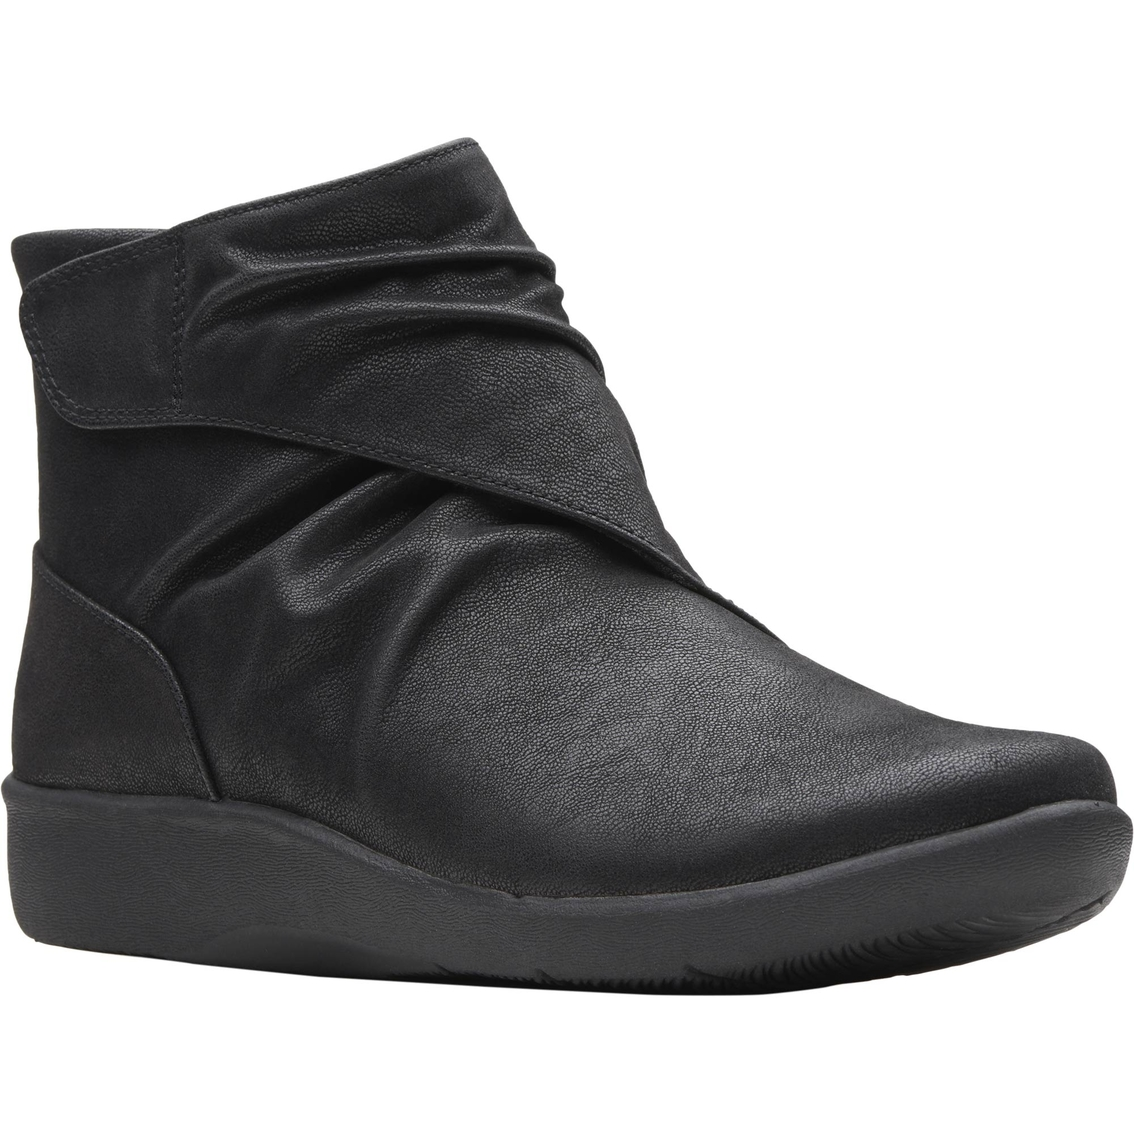 Clarks Women's Sillian Tana Cloudstepper Booties